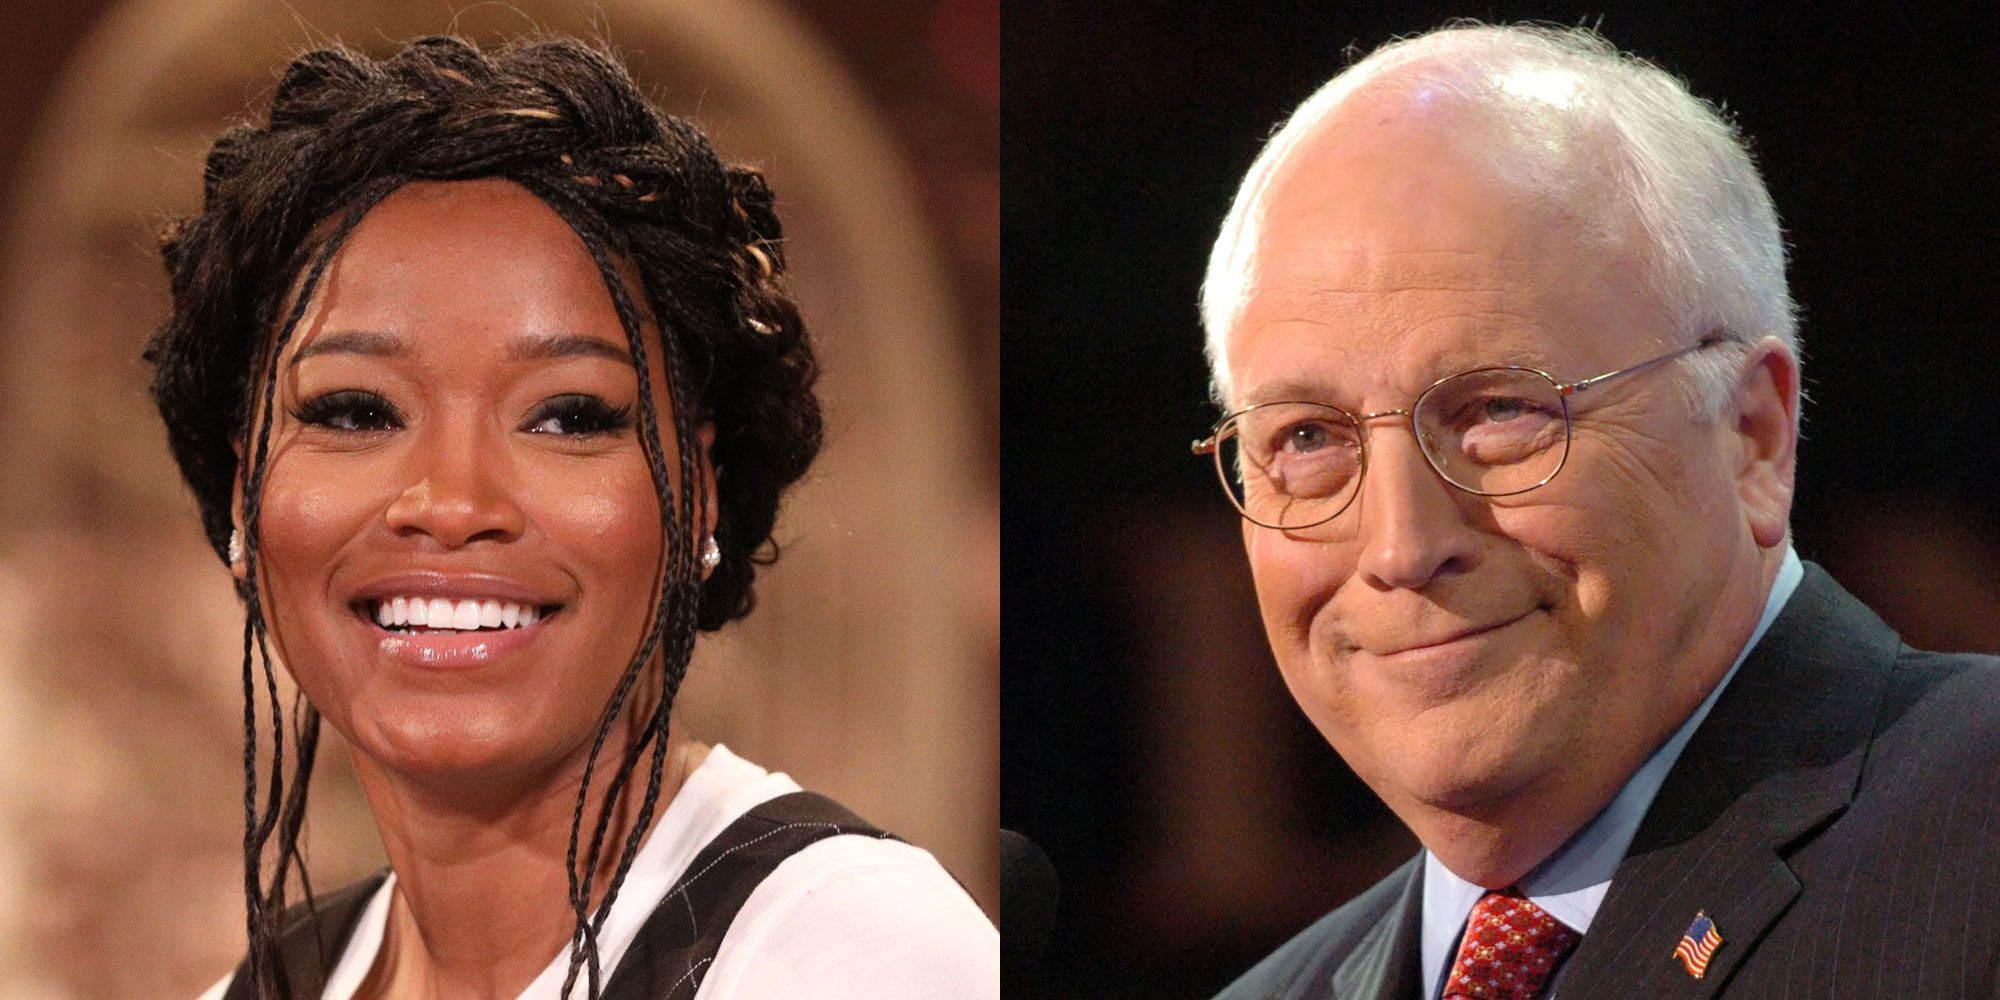 How to Dress Like Keke Palmer and Dick Cheney This Halloween